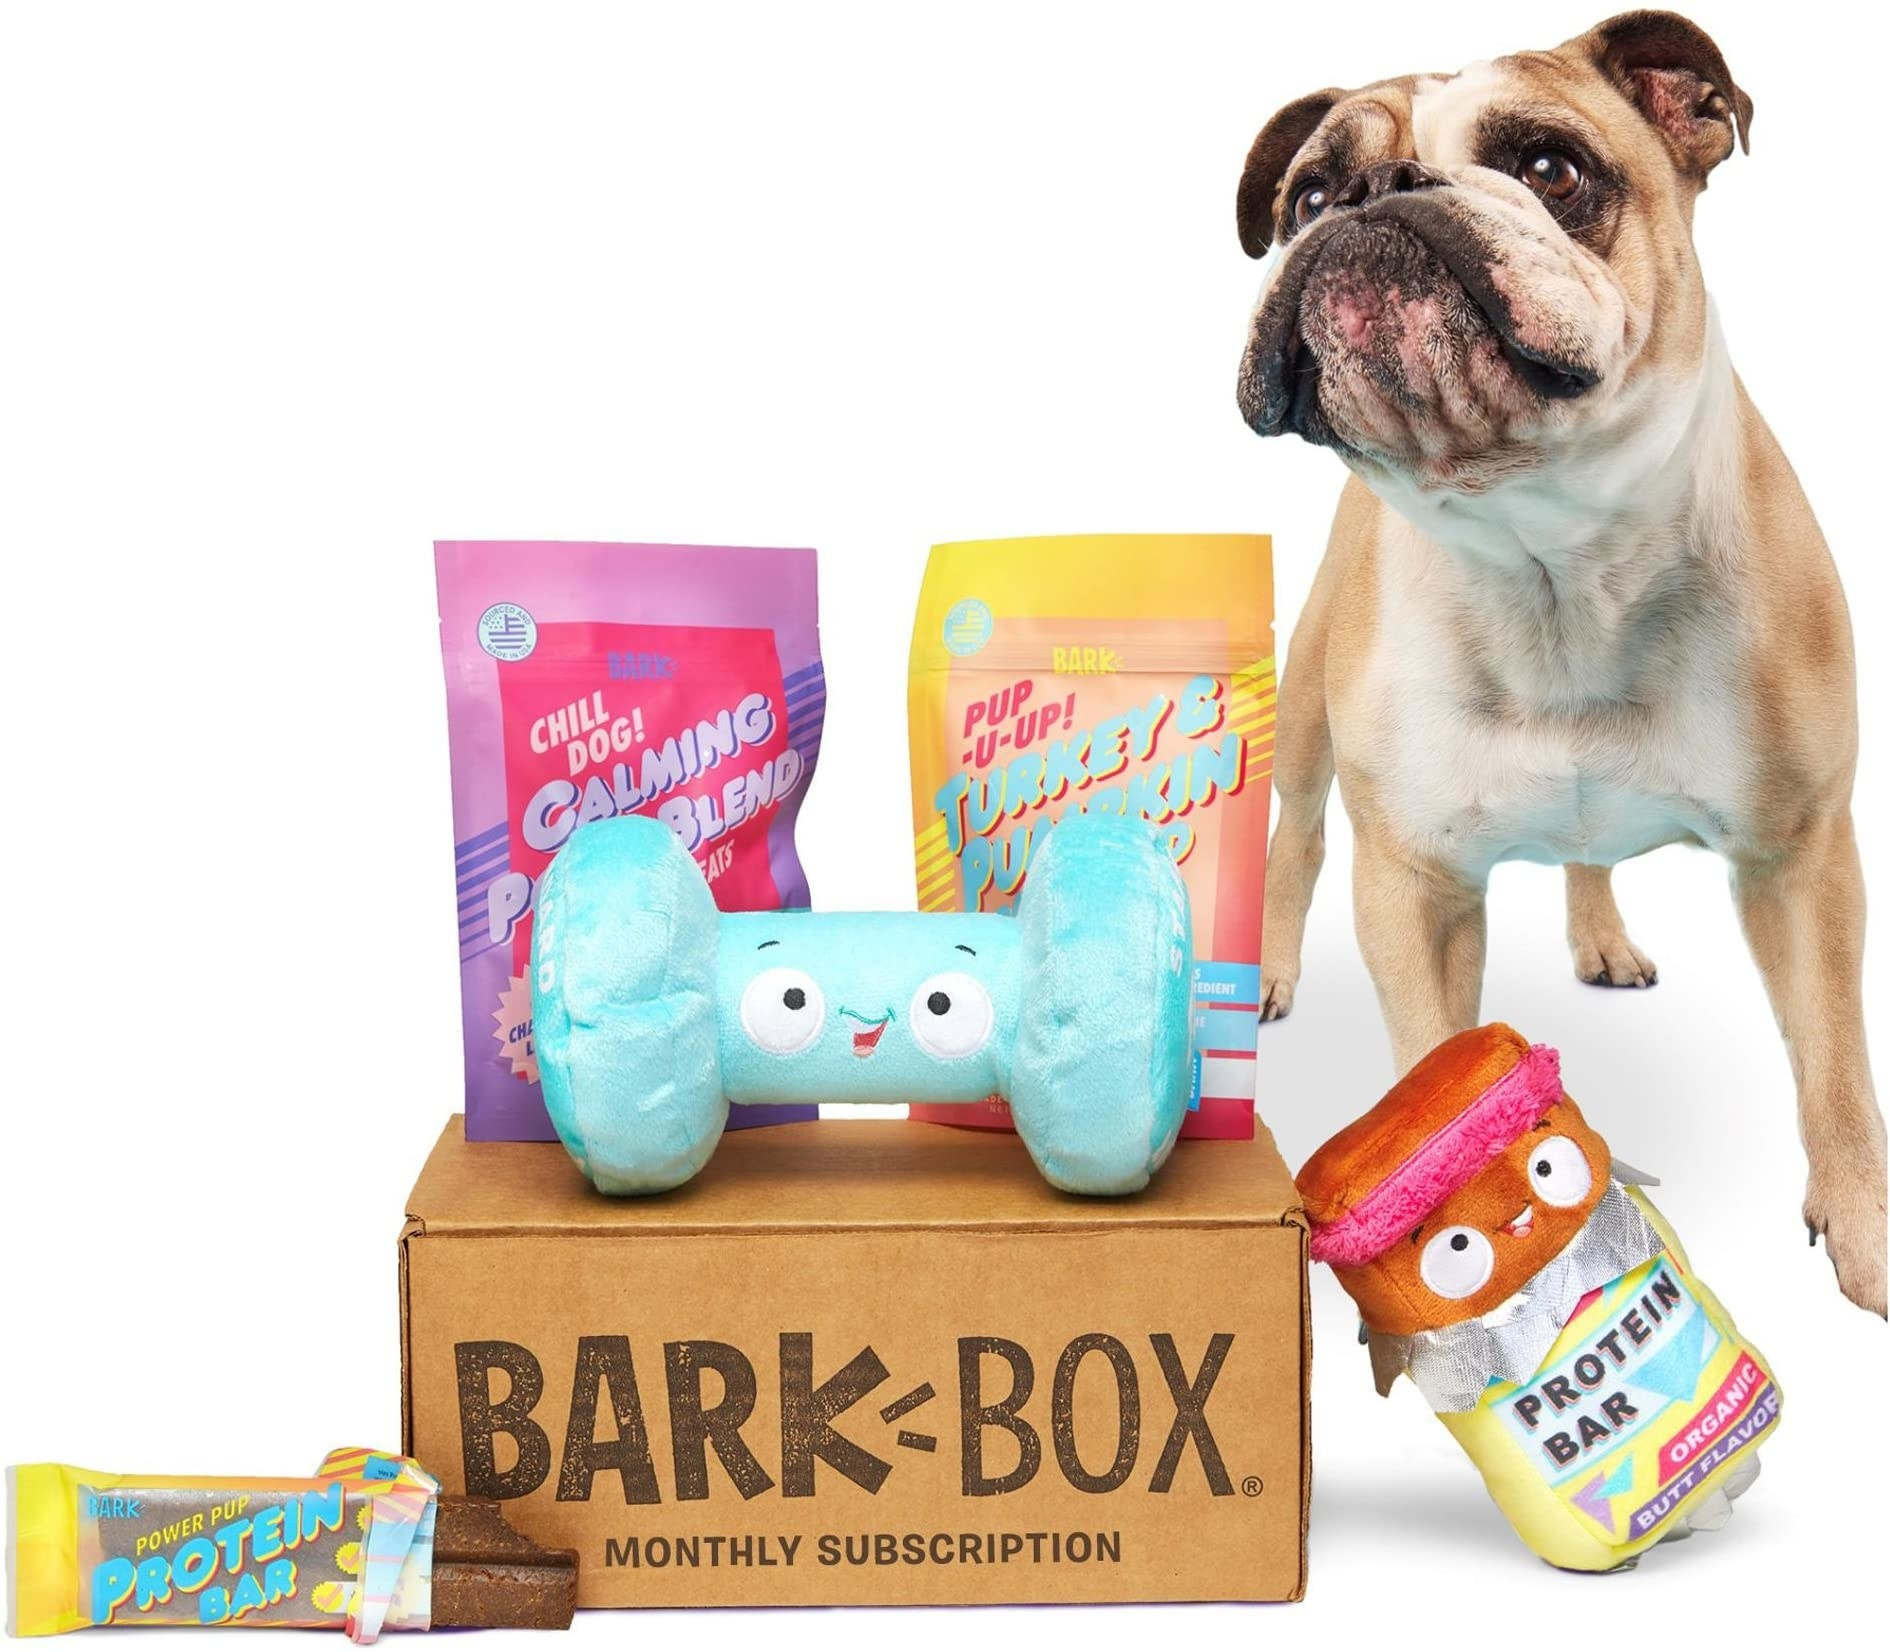 Product photo showing a Bark Box and some things that might come inside it each month